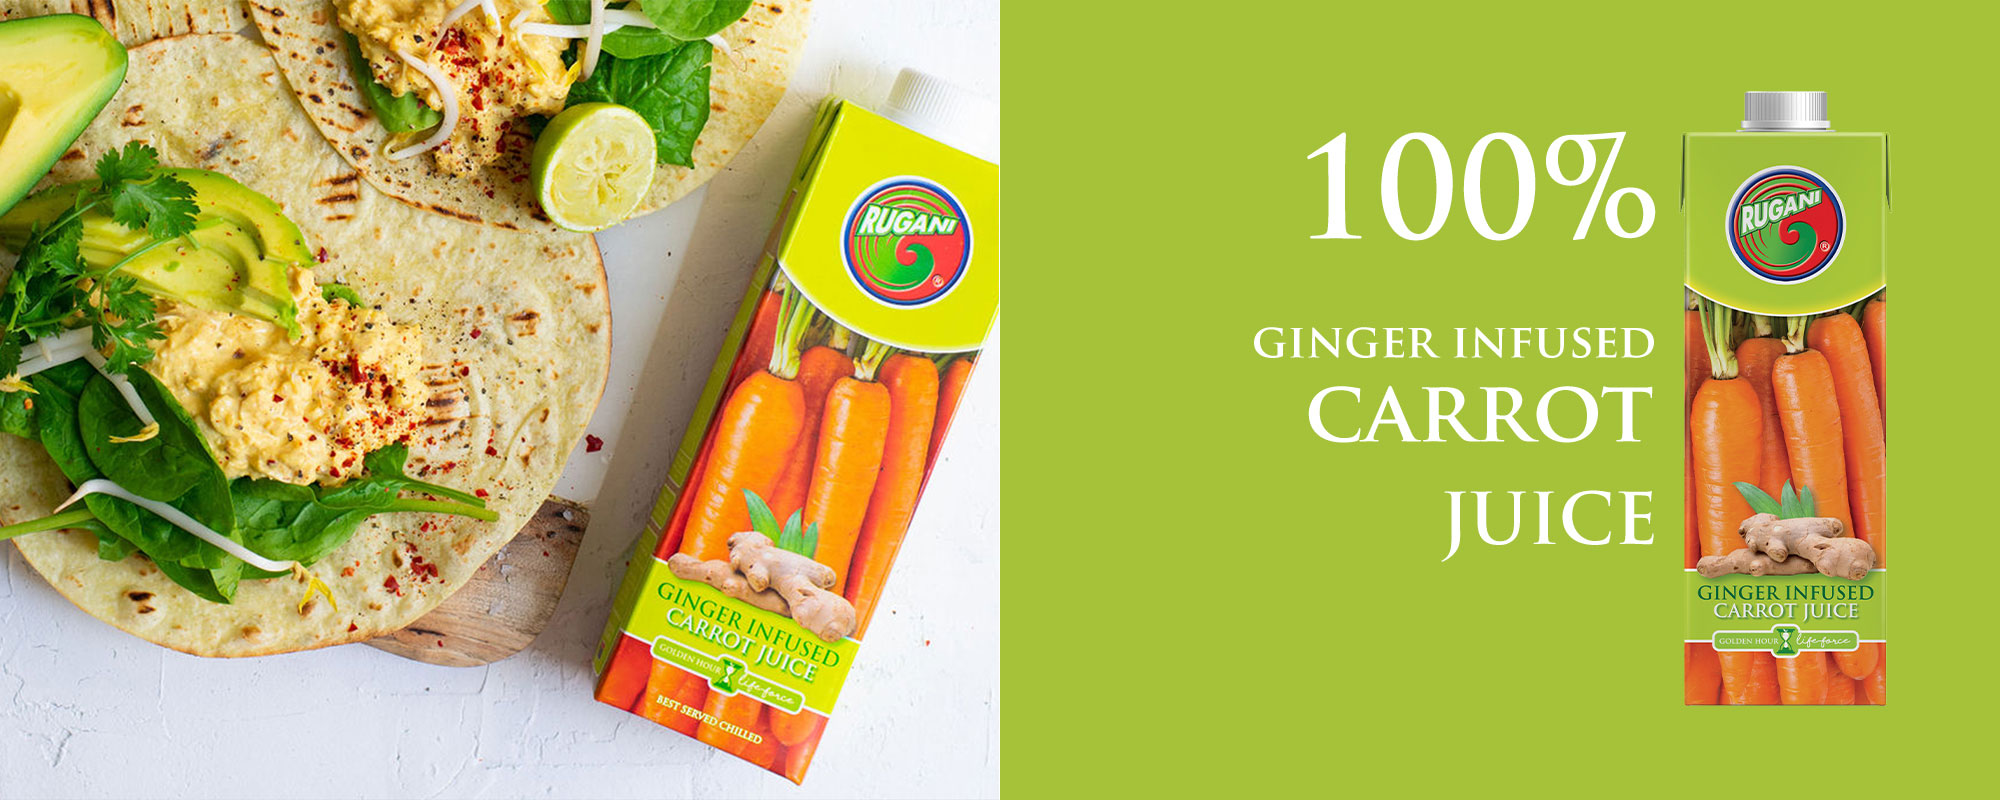 Rugani 100% Ginger Infused Carrot juice banner